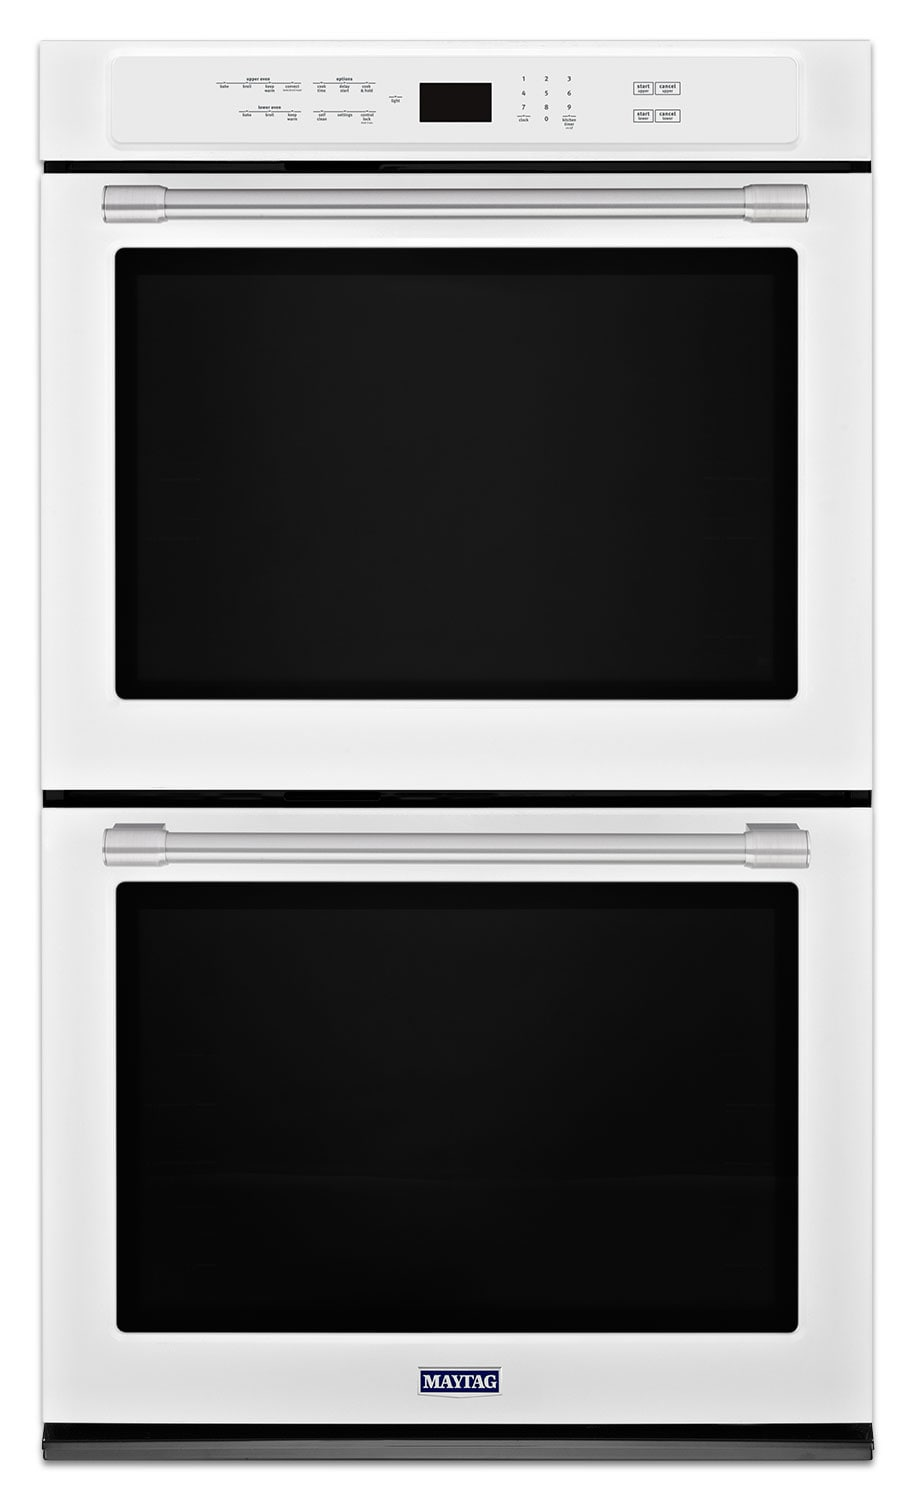 Maytag White Electric Double Wall Oven (10.0 Cu. Ft.) - MEW9630FW